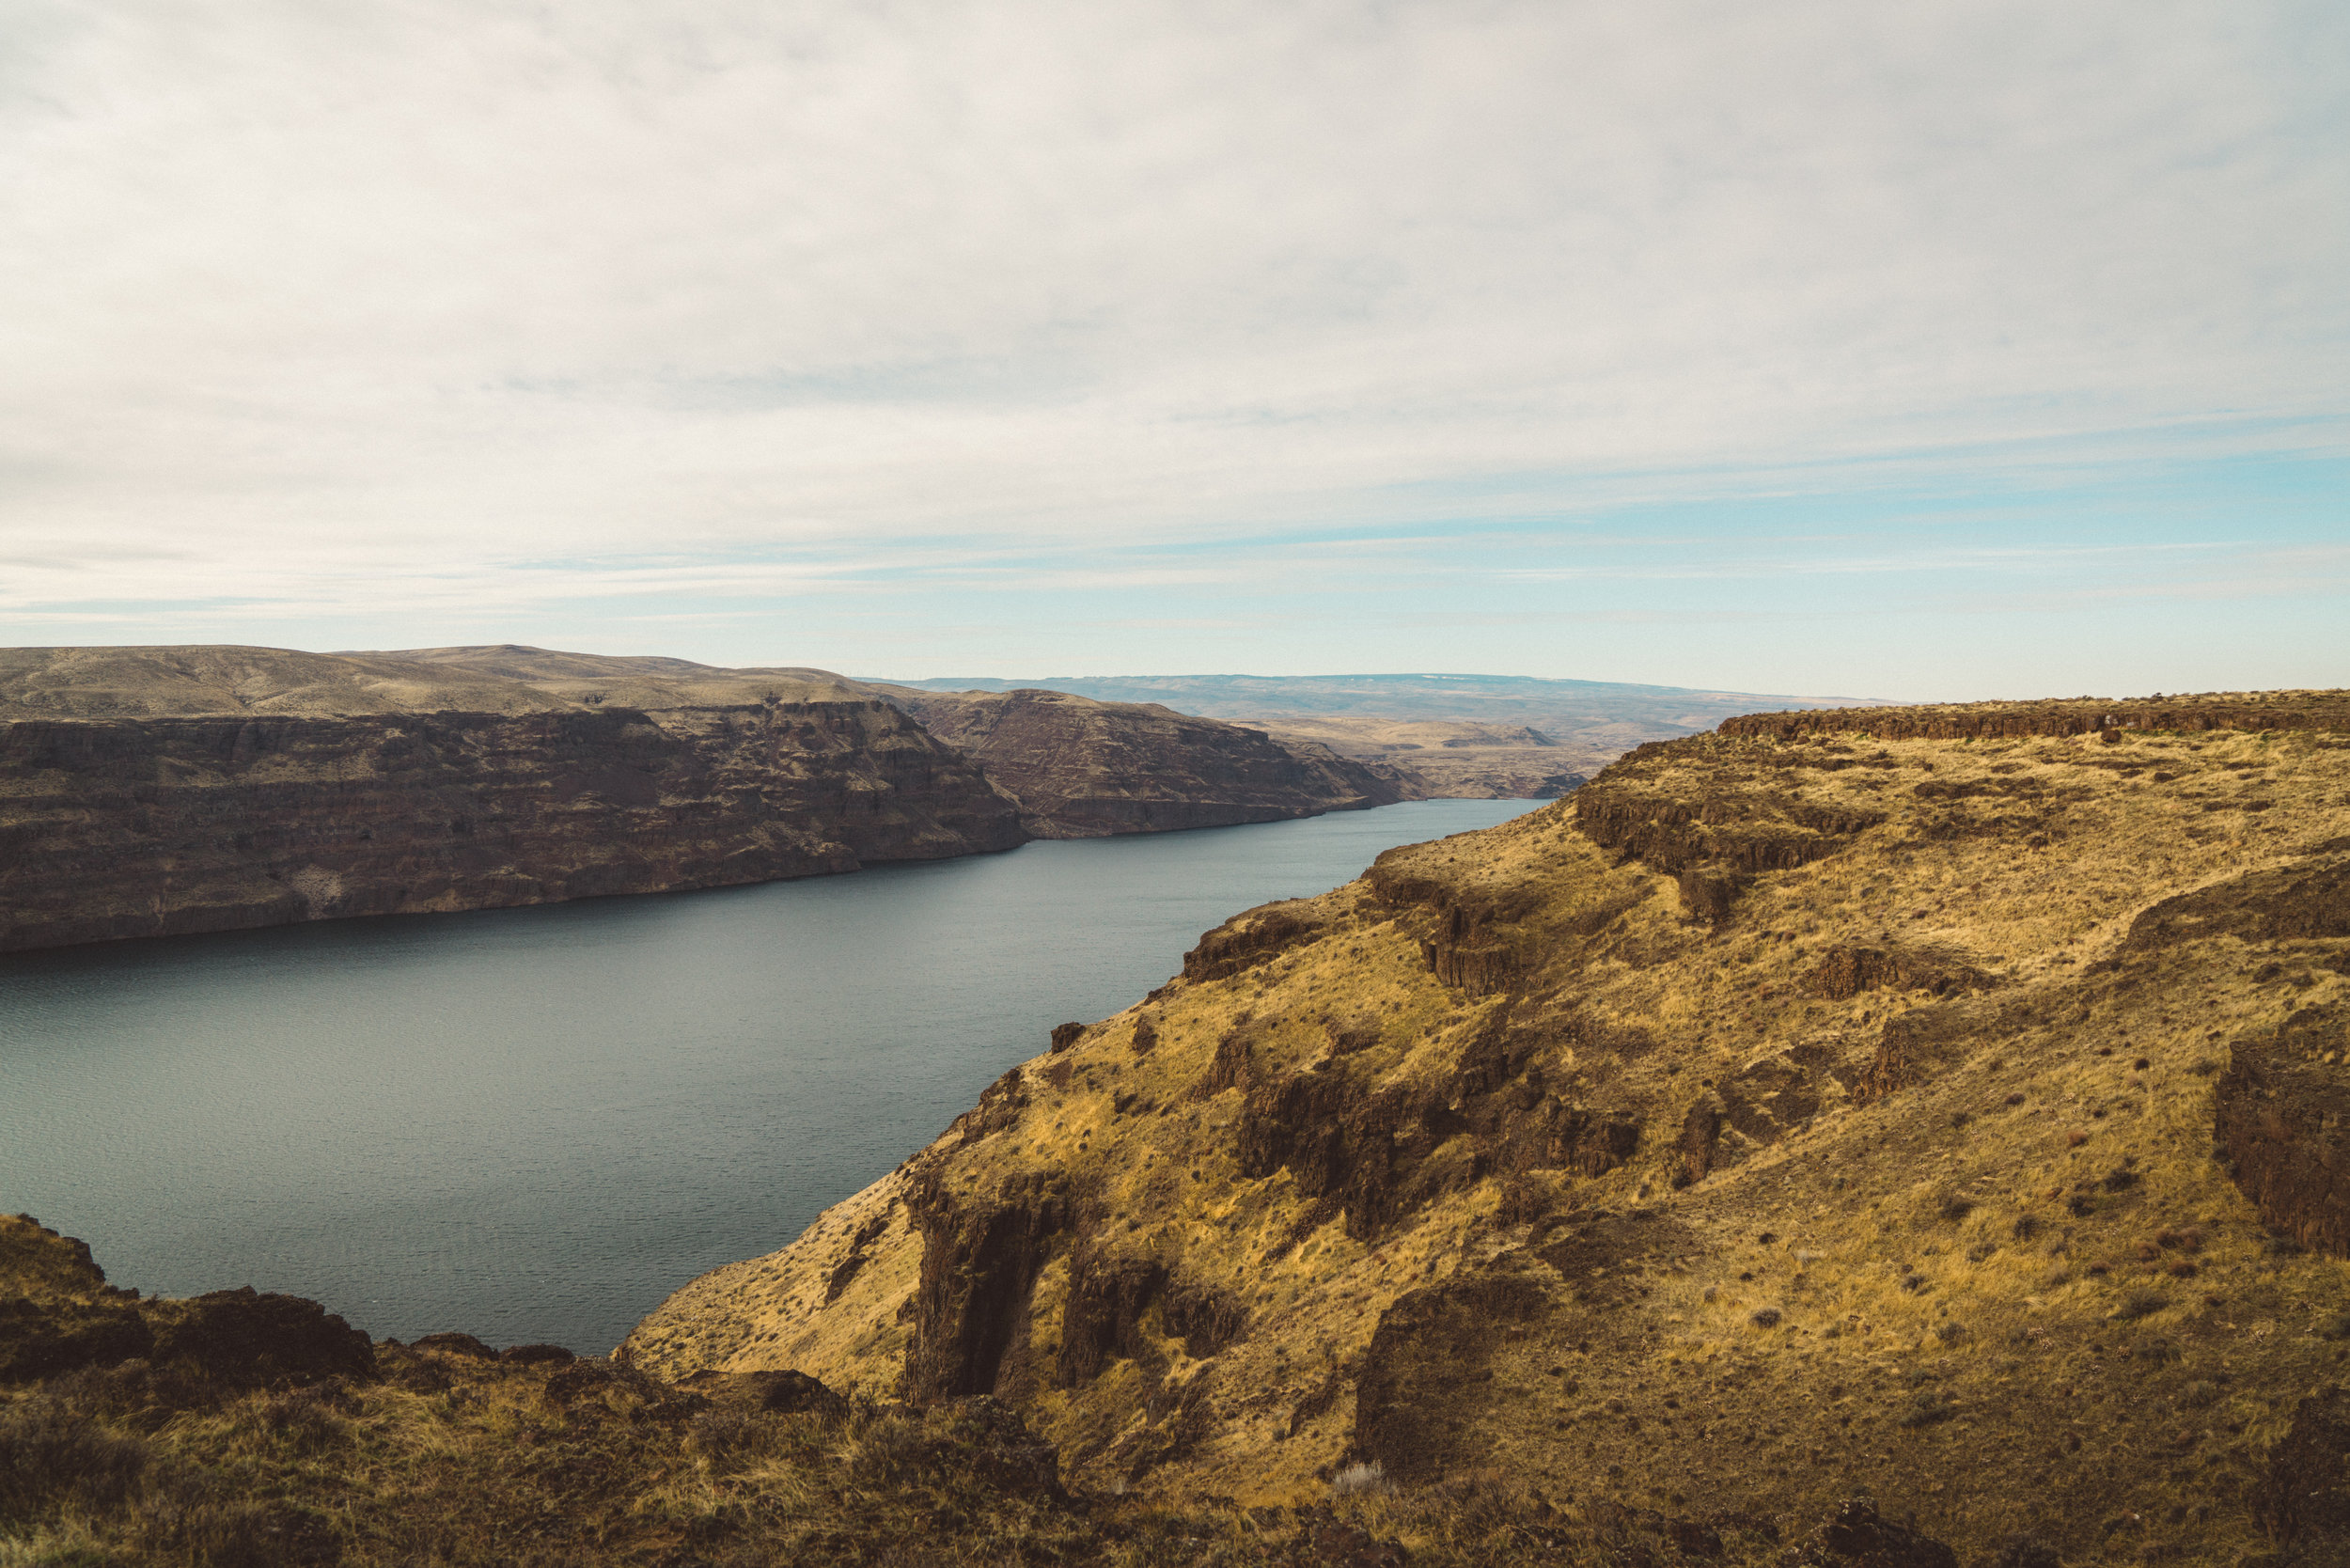 The mighty Columbia.